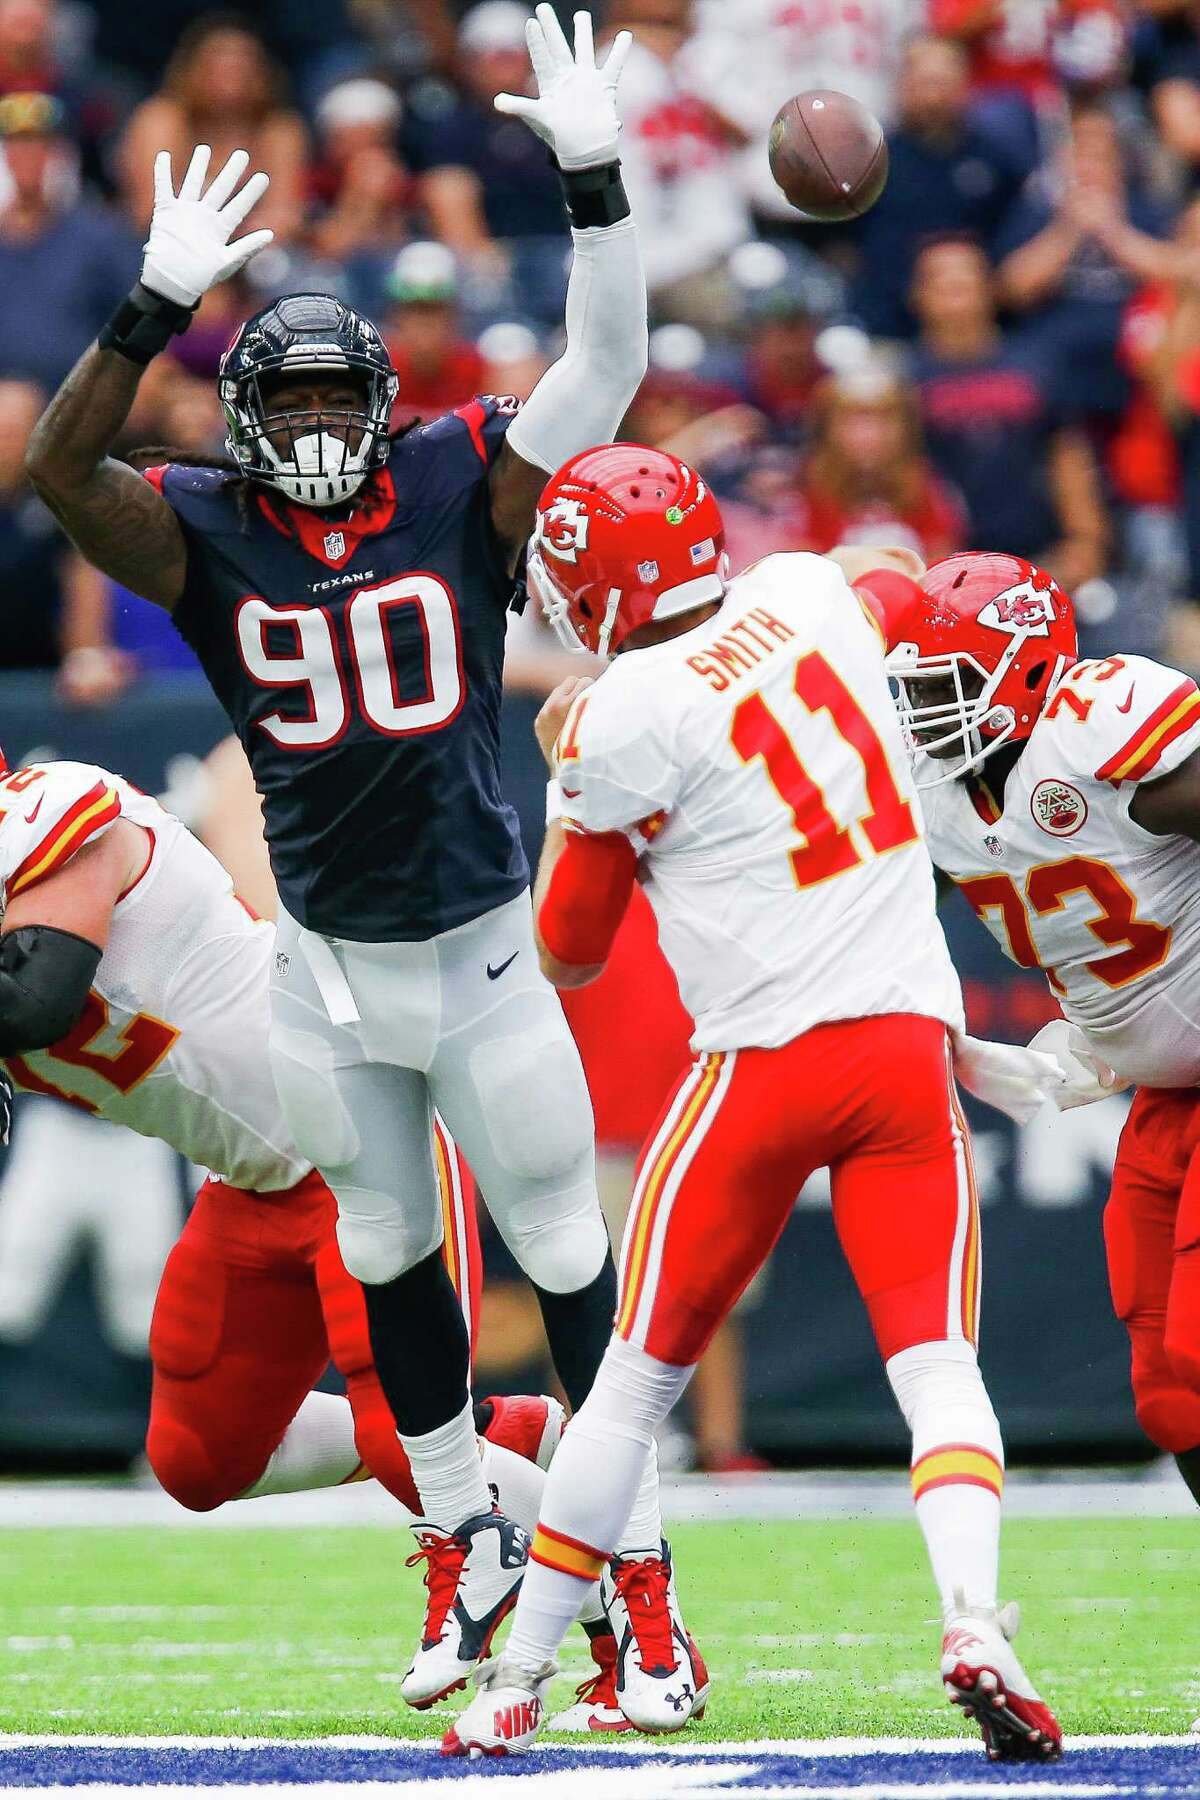 Houston Texans defensive end Jadeveon Clowney (90) attempts to block a pass by Kansas City Chiefs quarterback Alex Smith (11) during the second half of an NFL game at NRG Stadium Sunday, Sept. 18, 2016 in Houston.